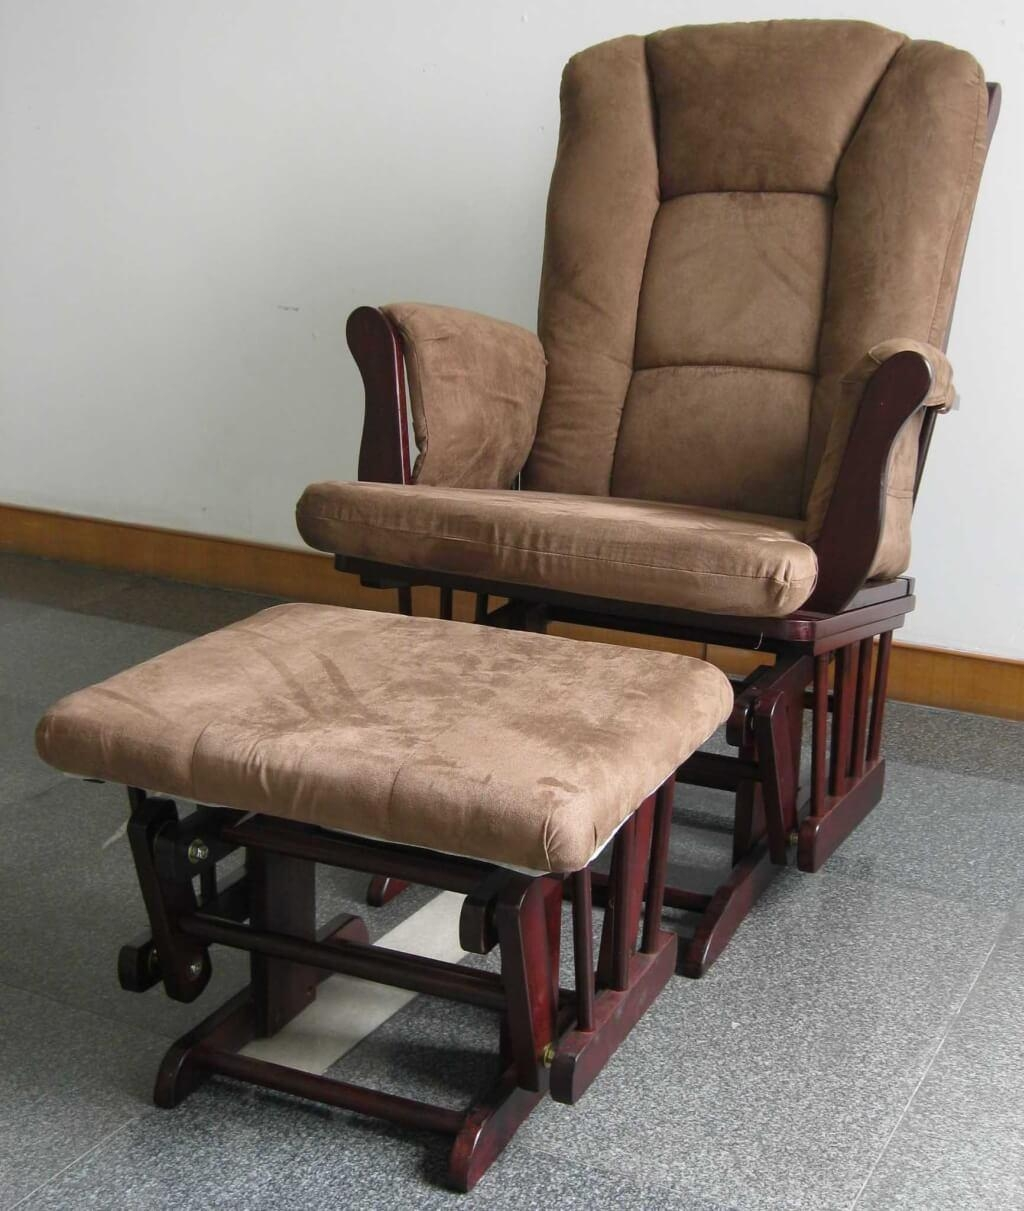 Sofa Brown Rocking Chair For Nursery   Tamingthesat With Rocking Sofa Chairs (Image 14 of 20)